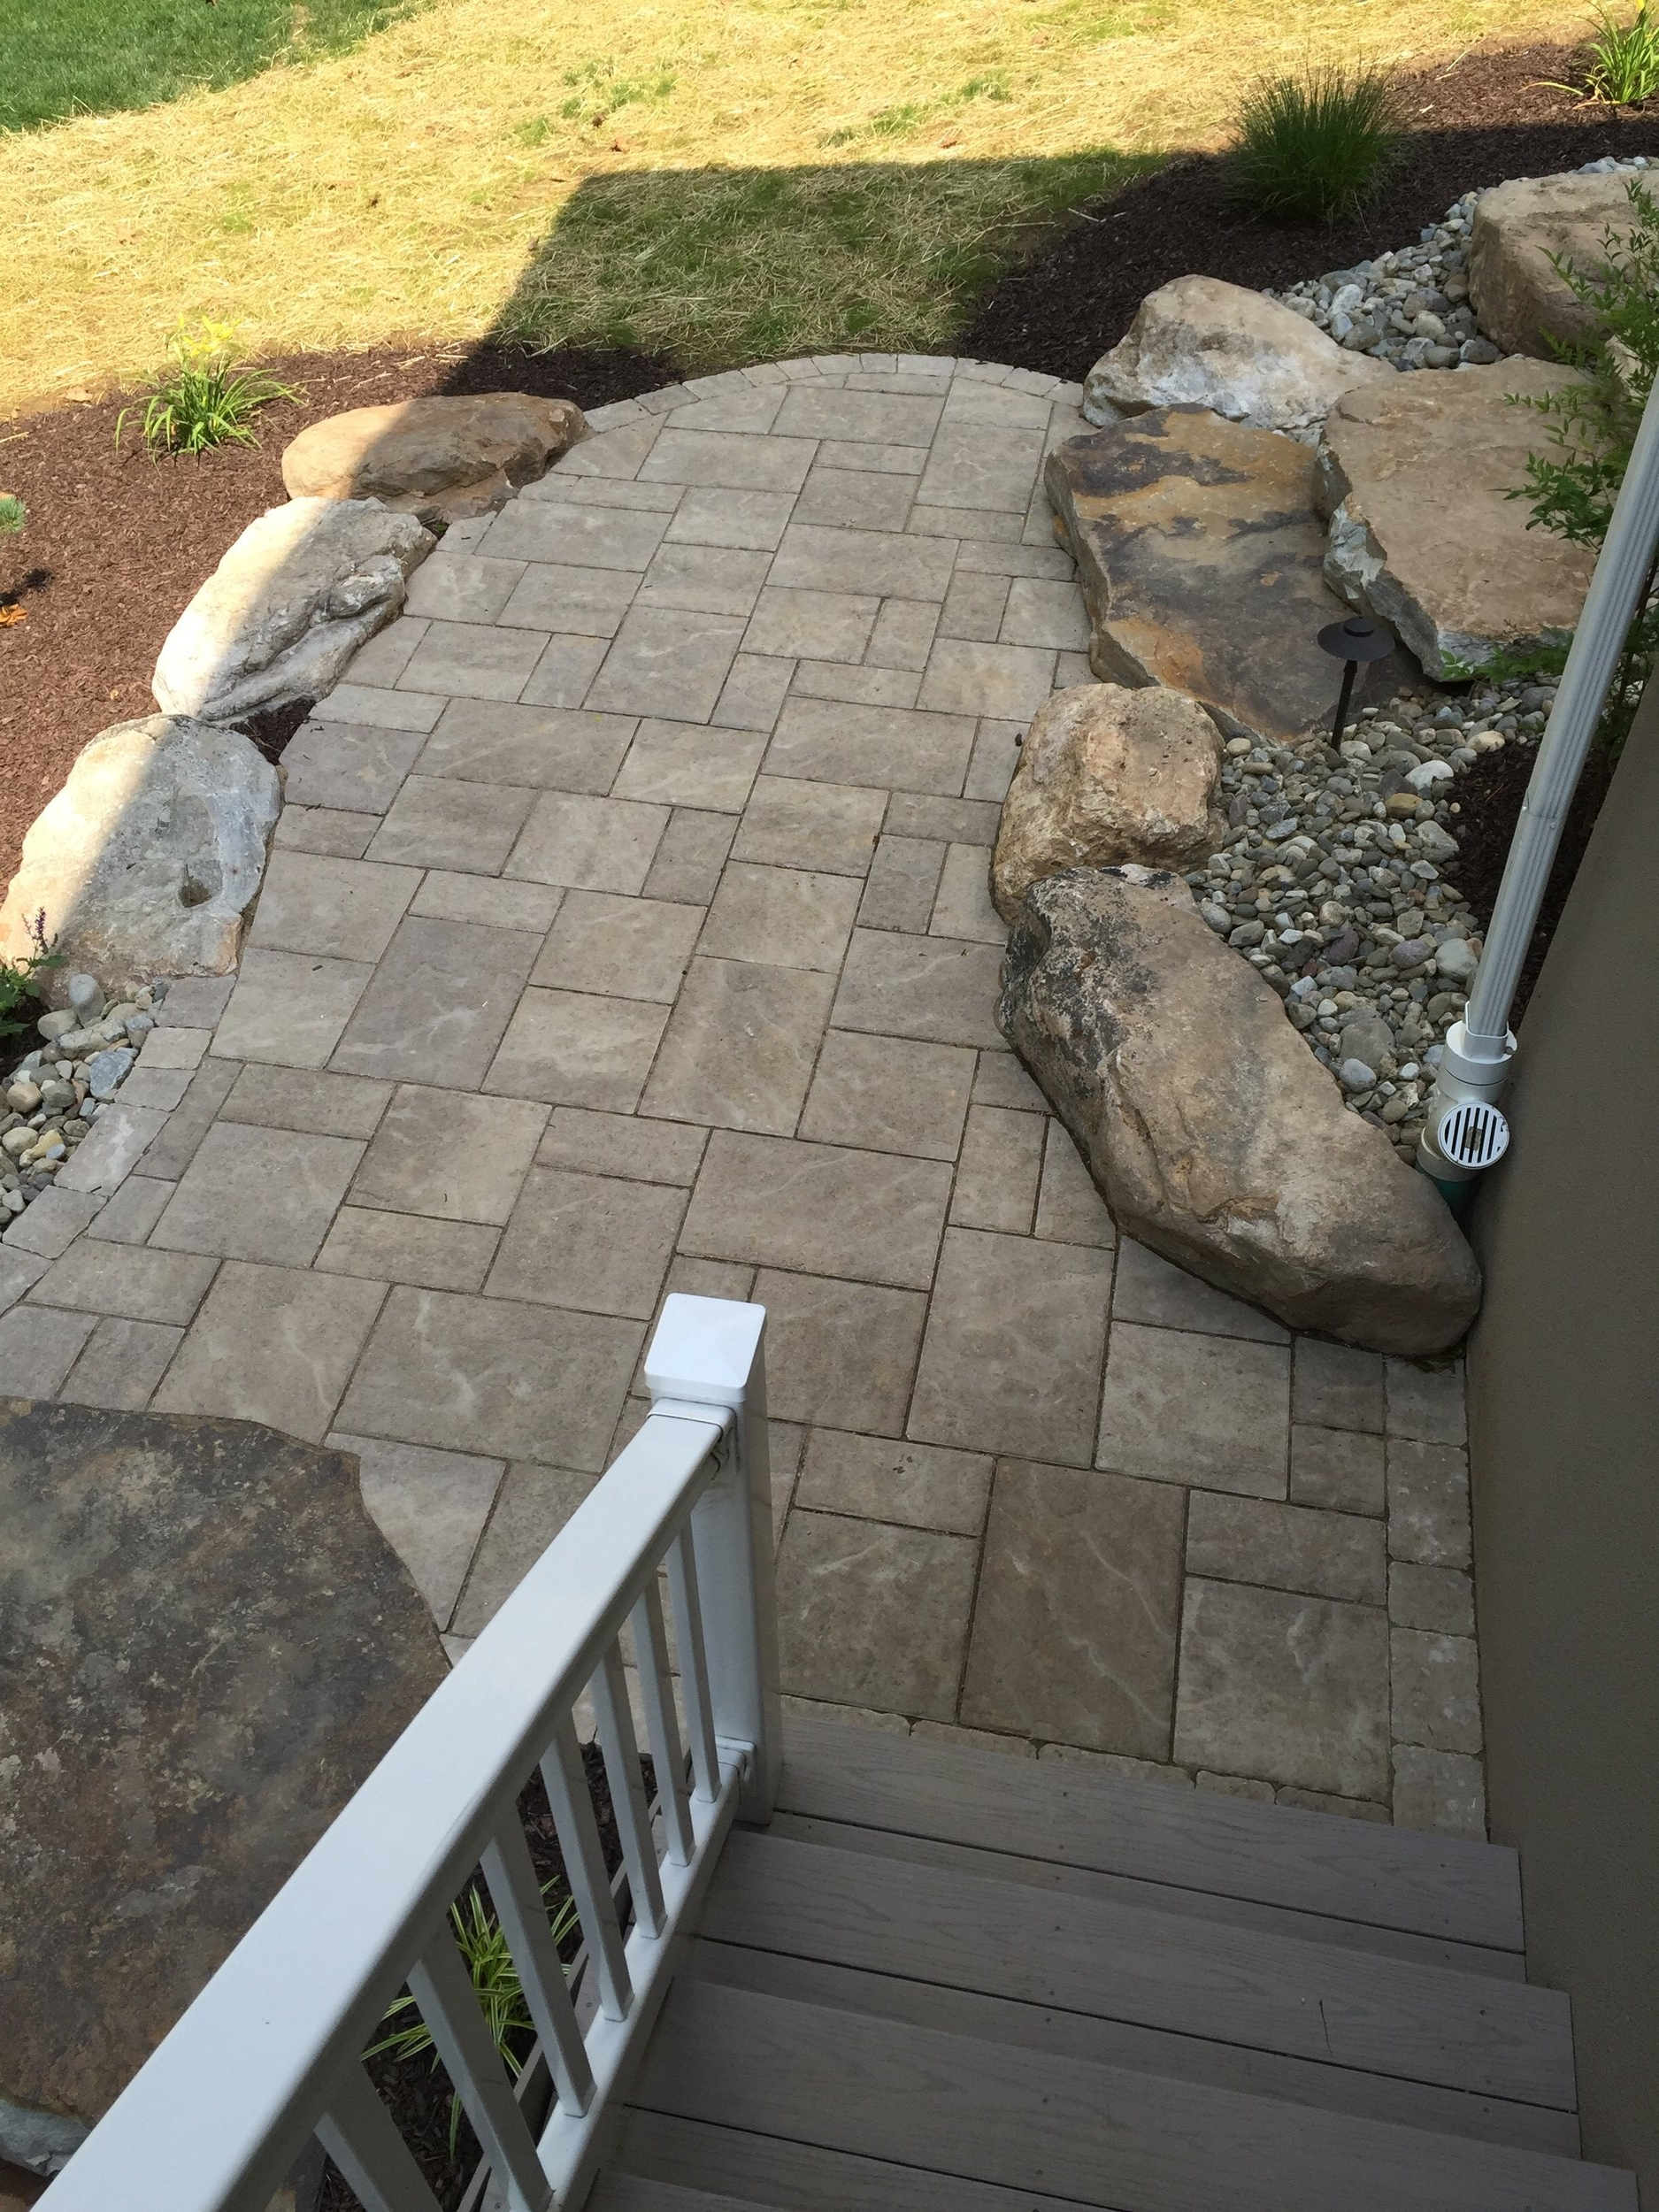 Professional landscape patio ideas in Lehigh county, PA